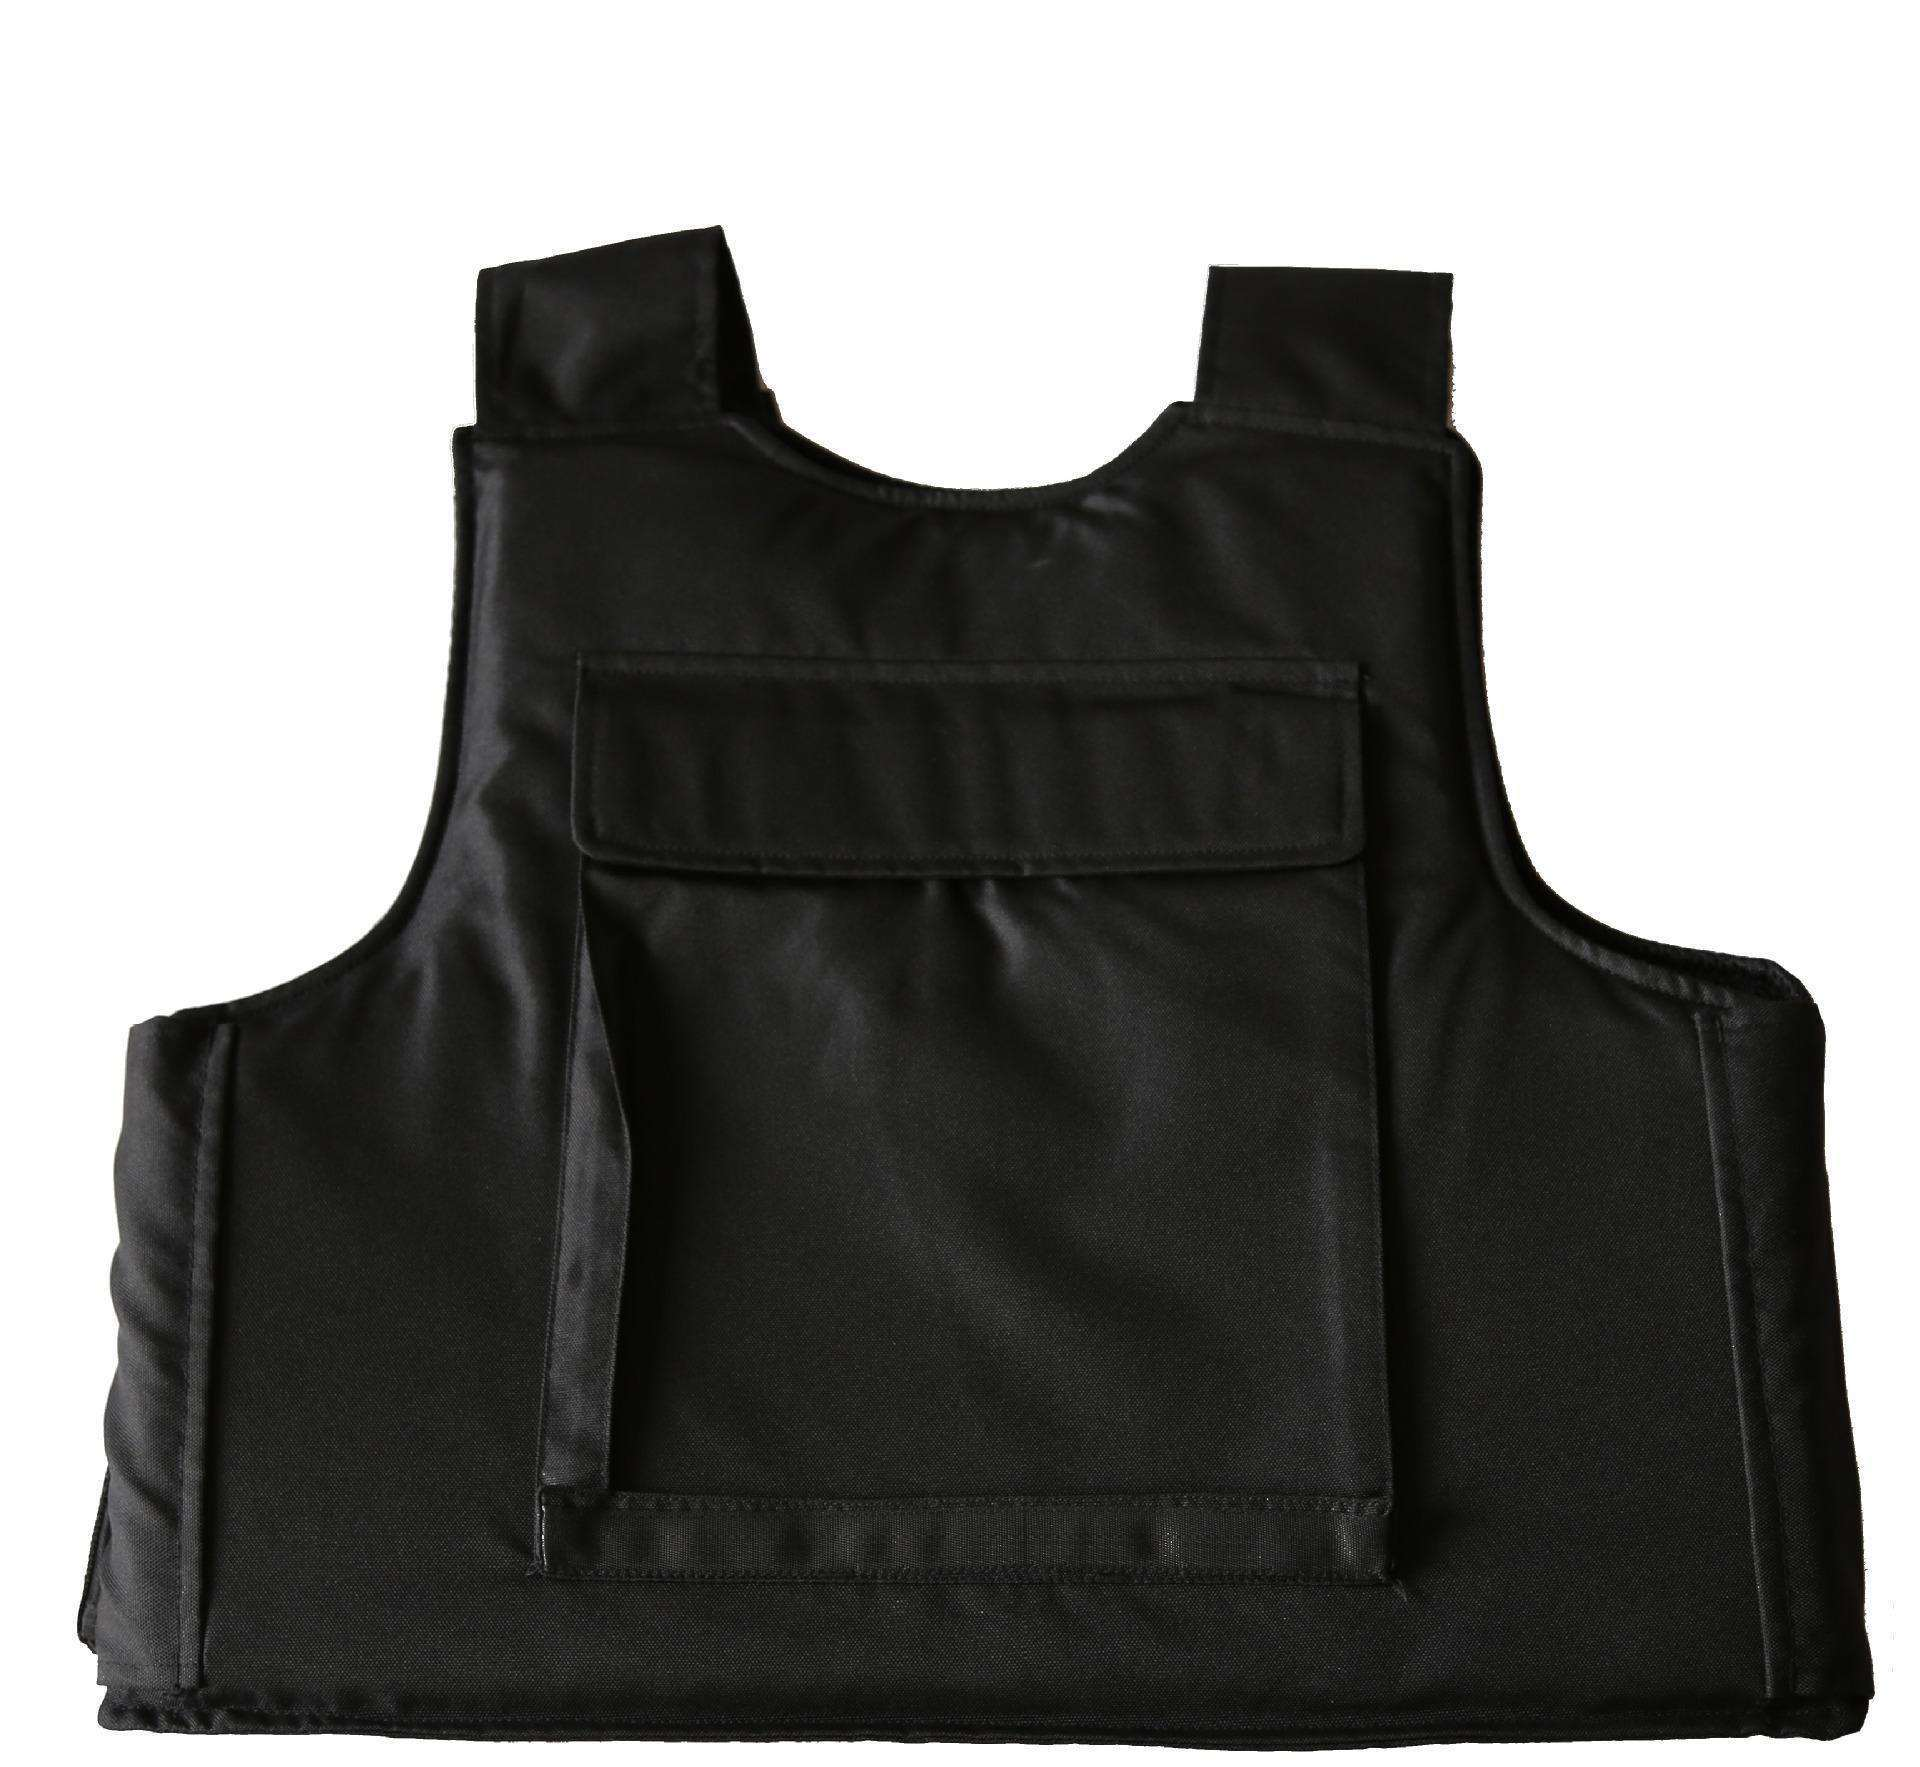 Law Enforcement Military Bulletproof Vest pictures & photos